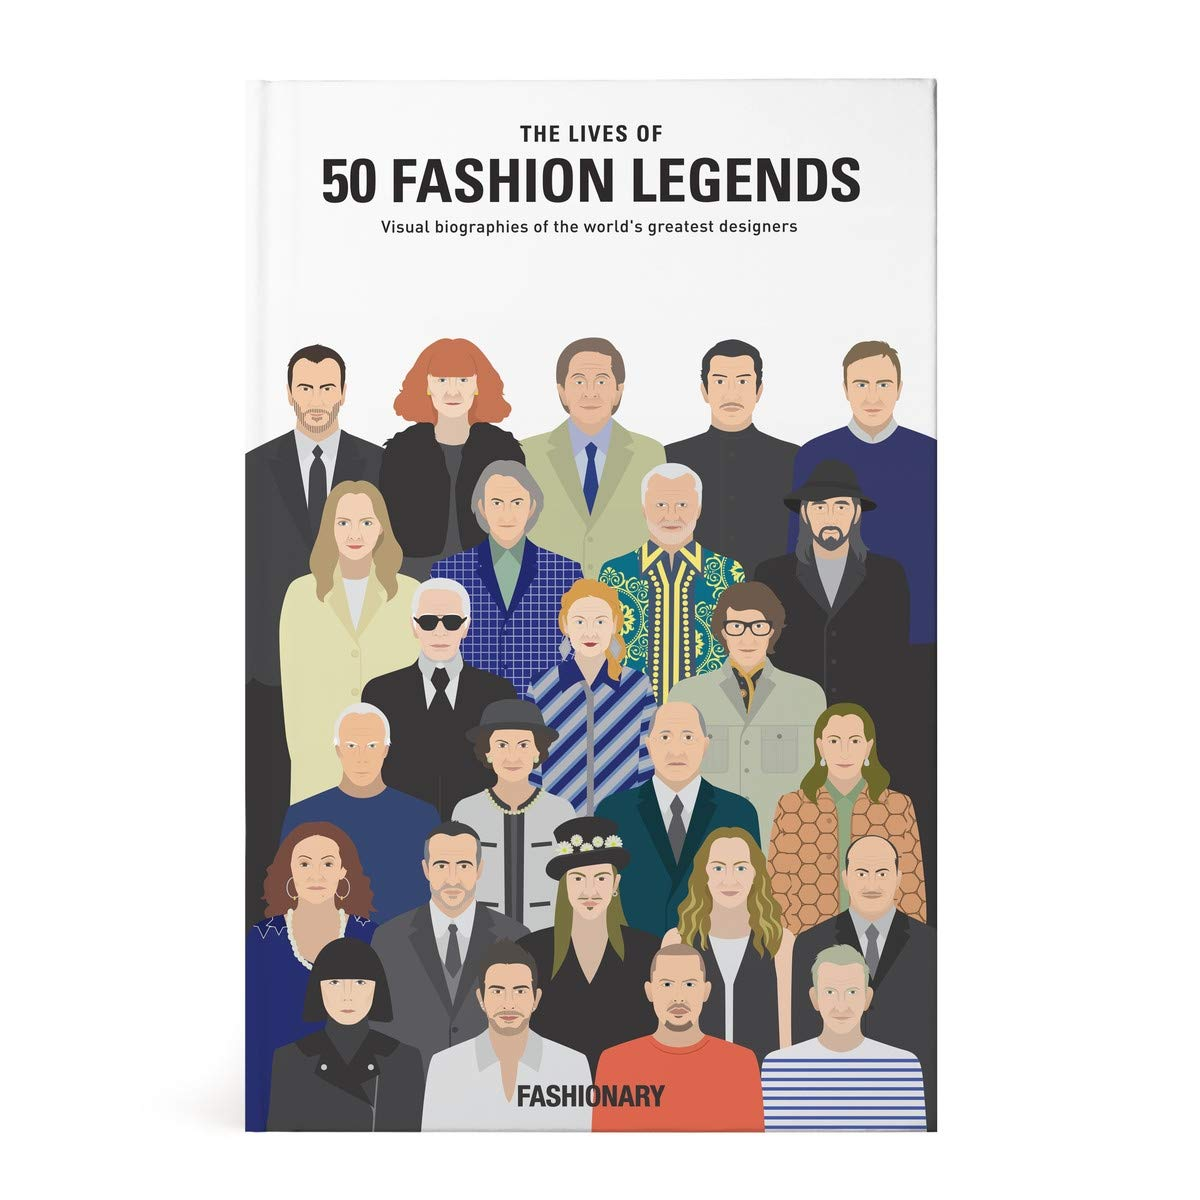 Image OfThe Life Of 50 Fashion Legends